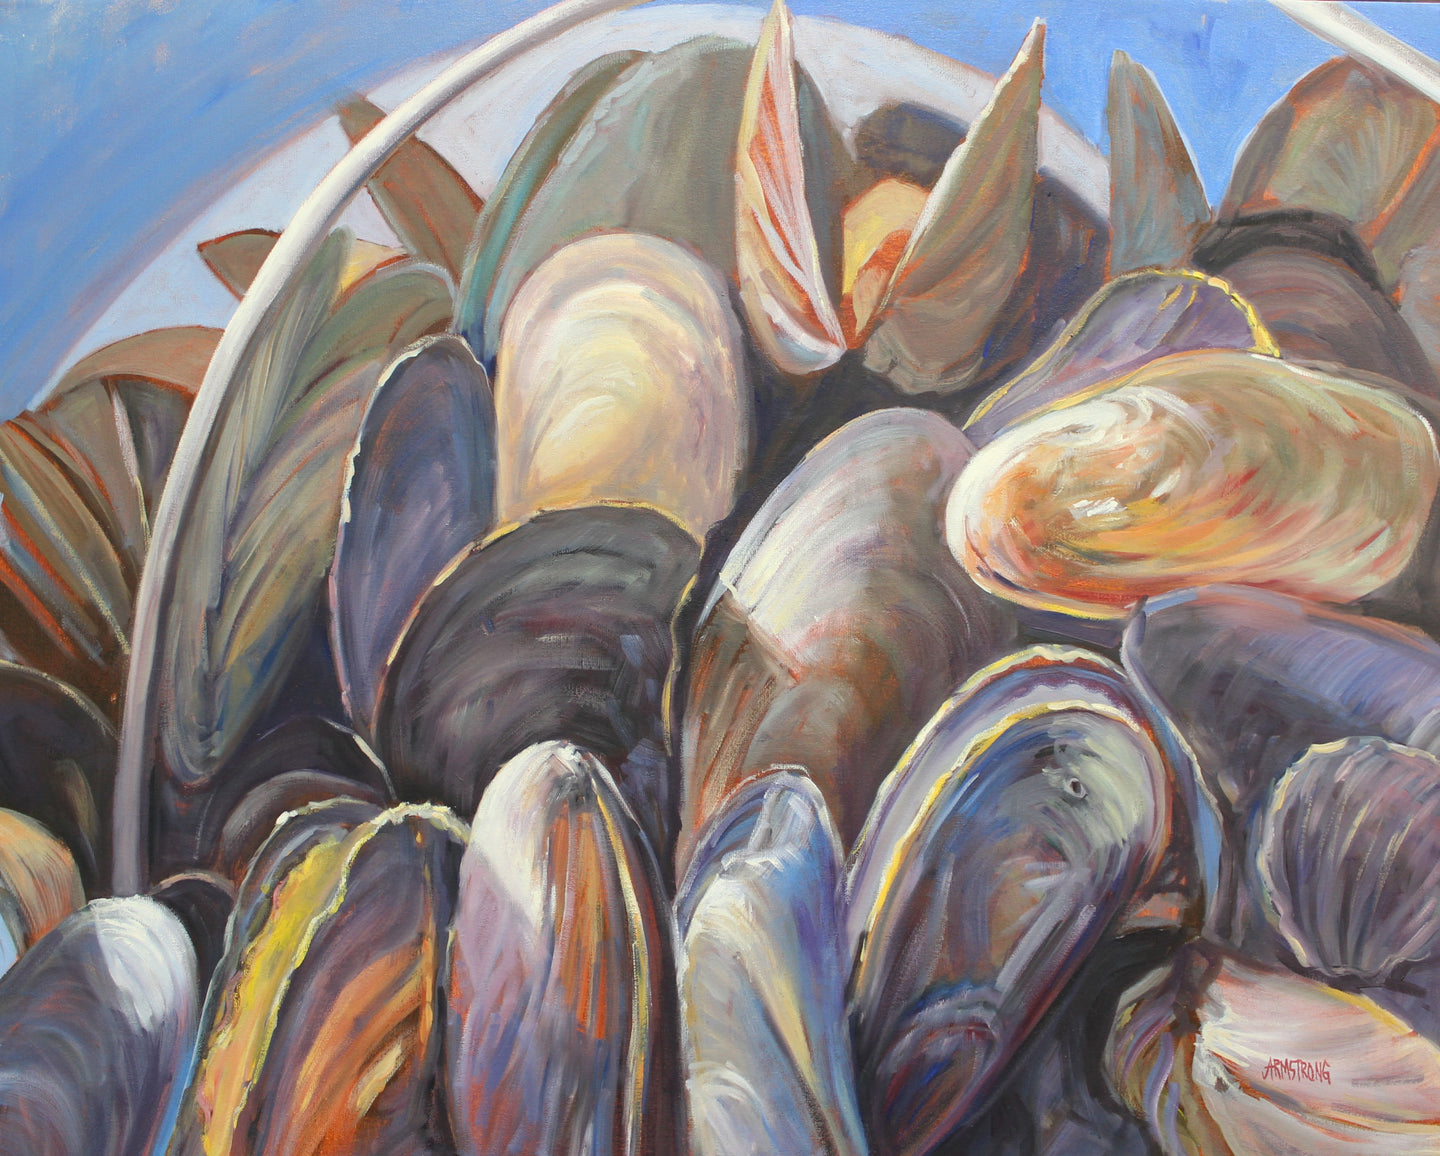 Flexing My Mussels, 24 x 30